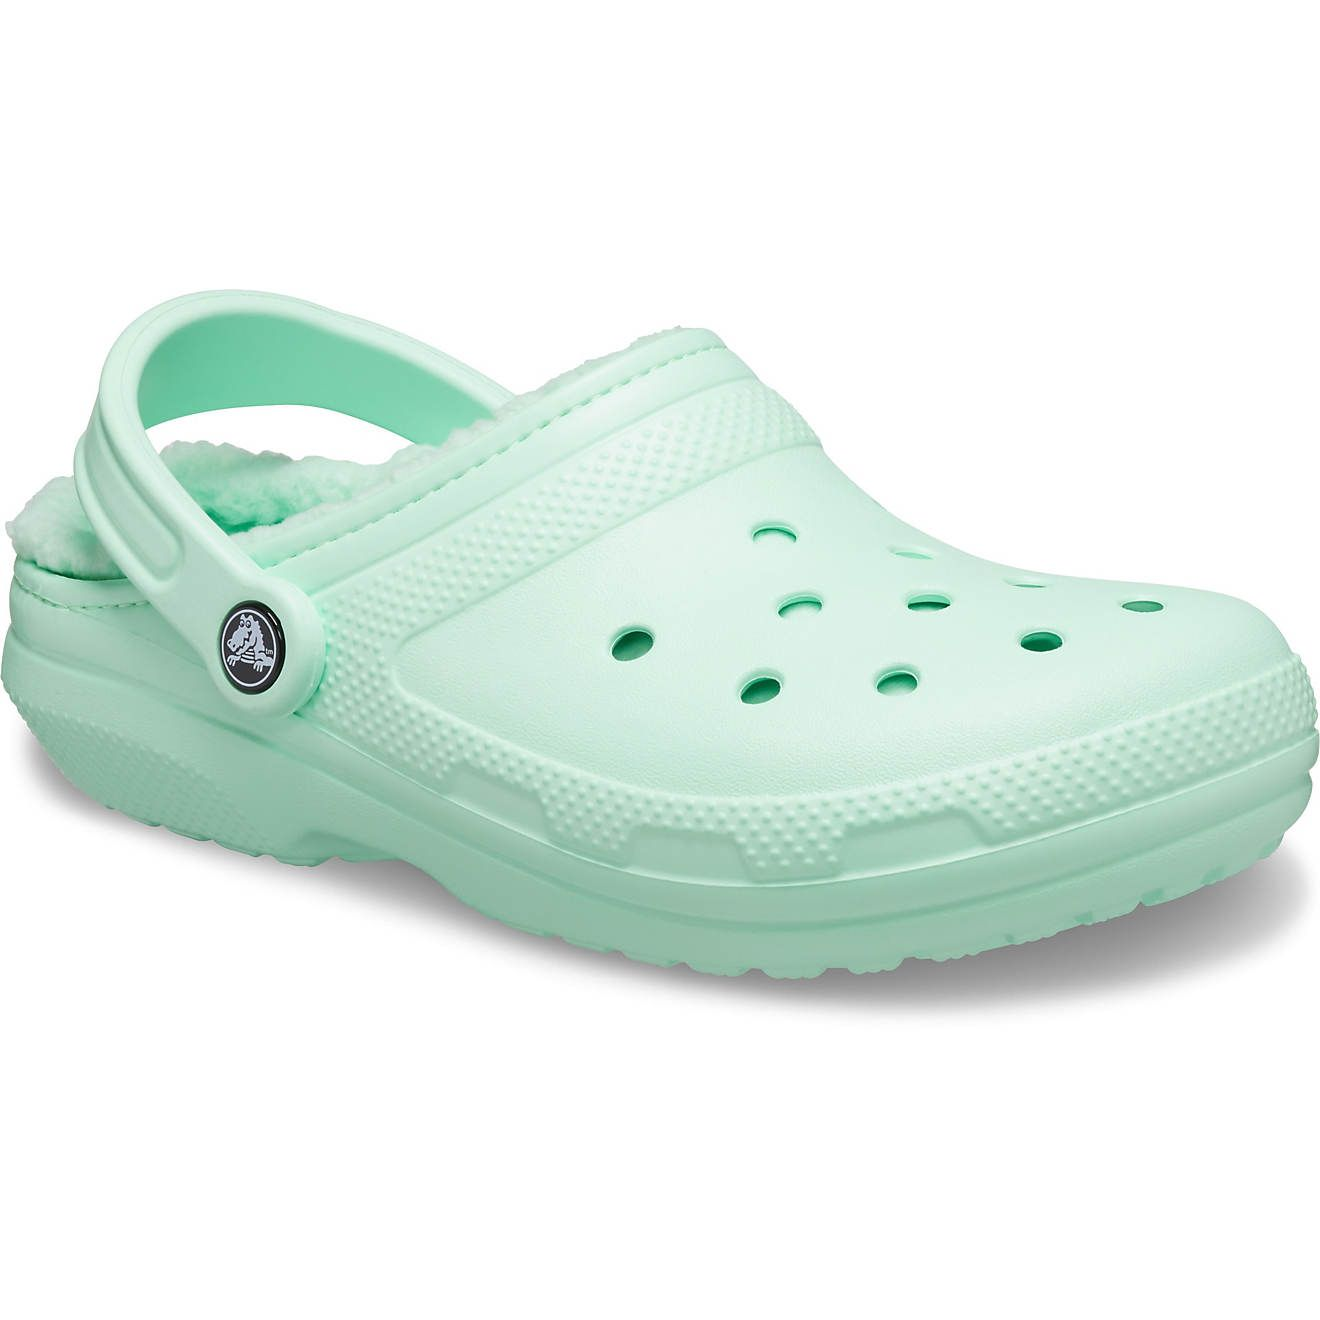 at Academy with these fresh new Crocs